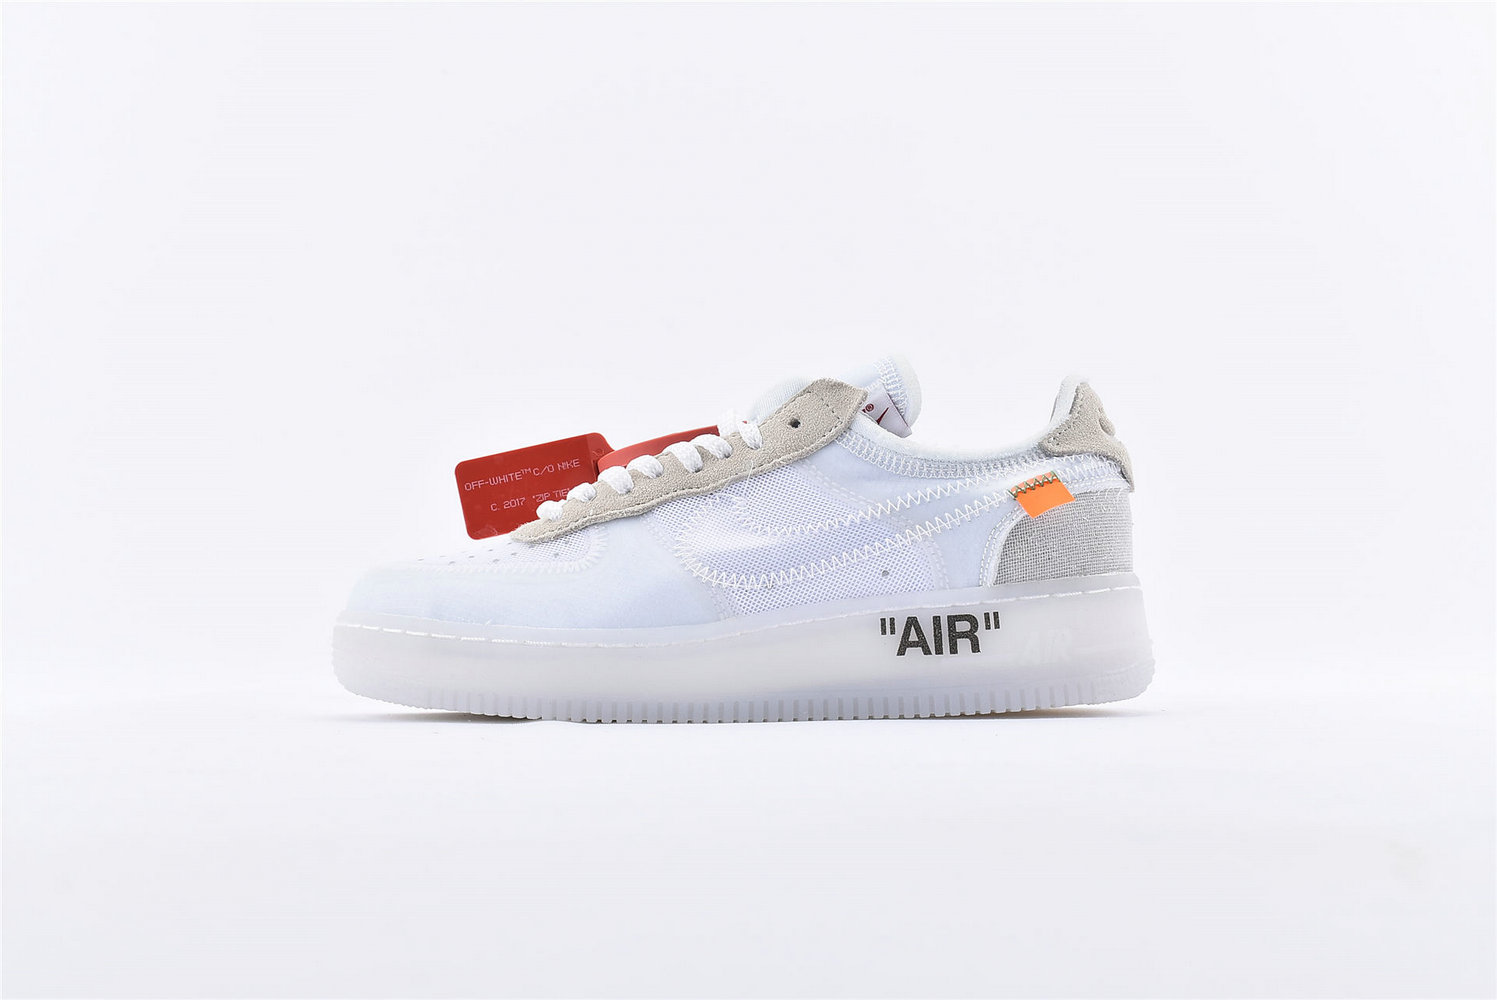 Where To Buy Wholesale Cheap Off-White x Nike Air Force 1 Low White-White-Sail AO4606-100 - www.wholesaleflyknit.com